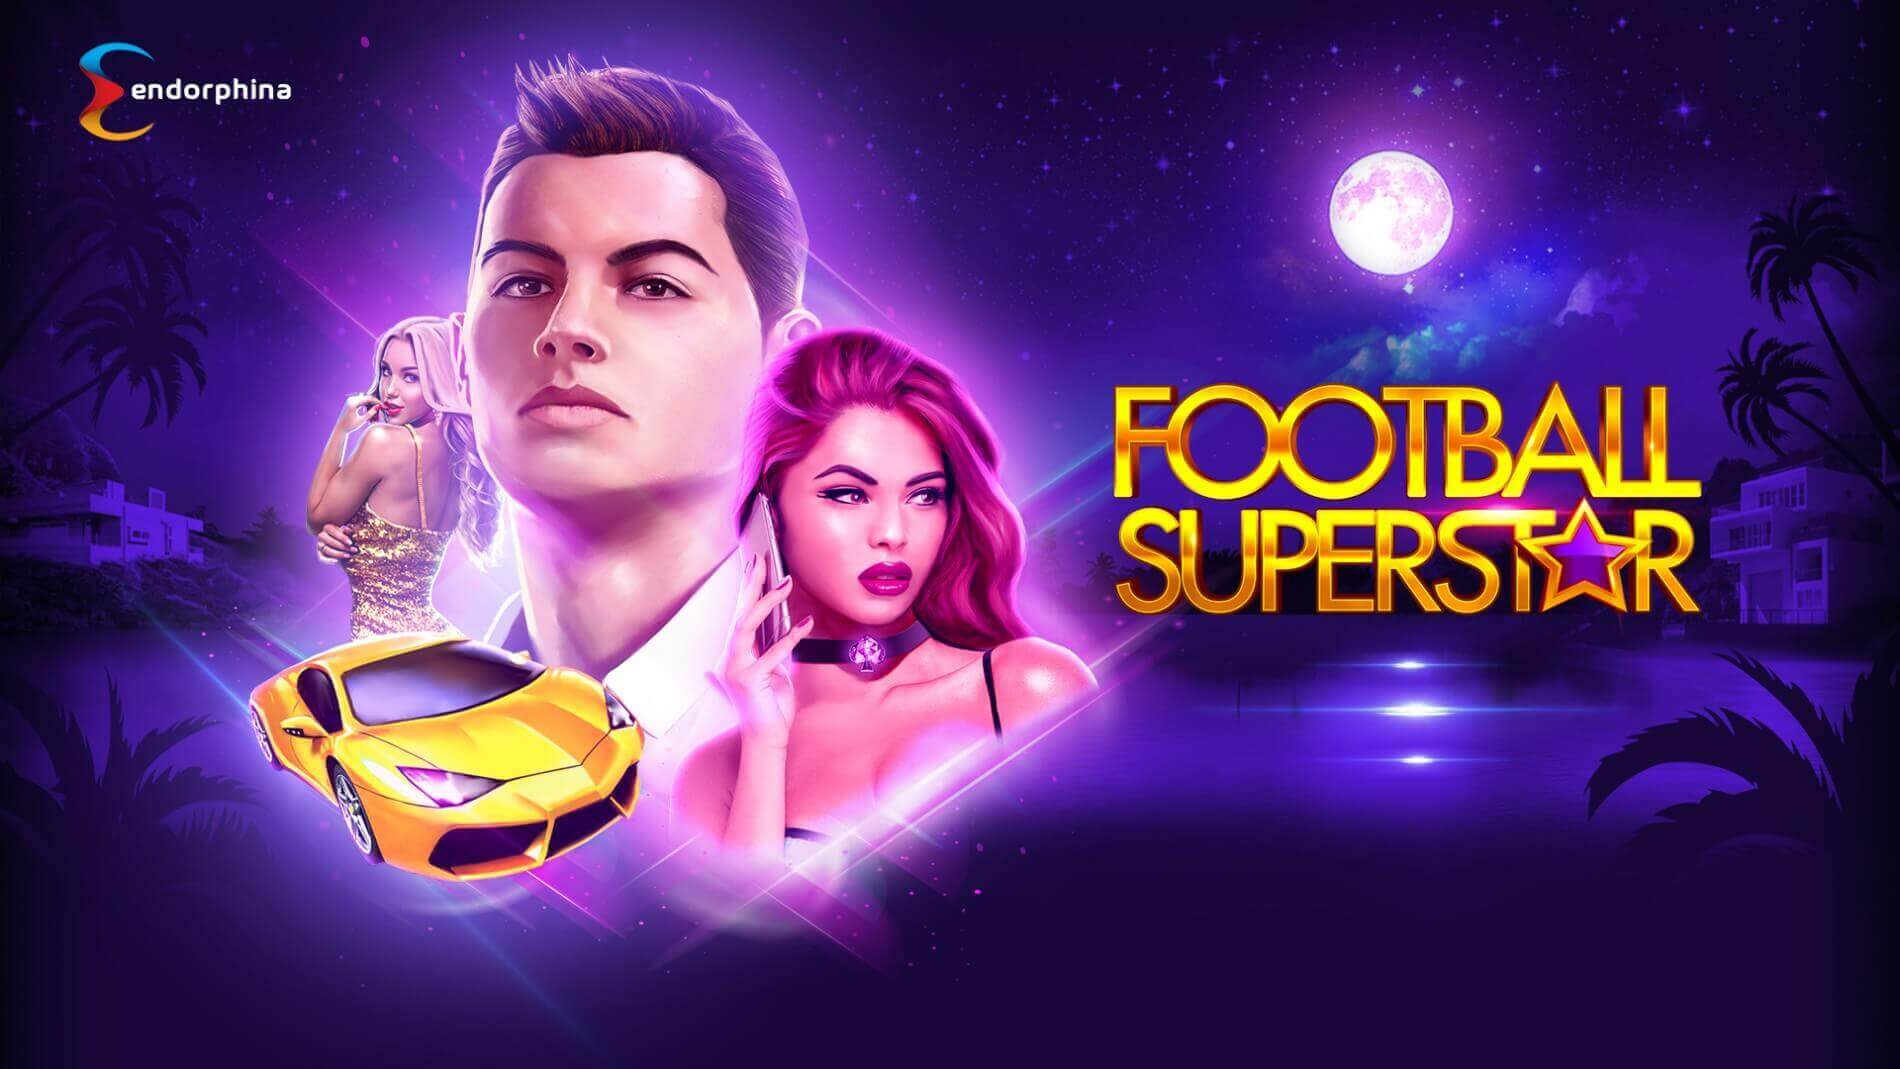 Football Superstar Endorphina - play demo